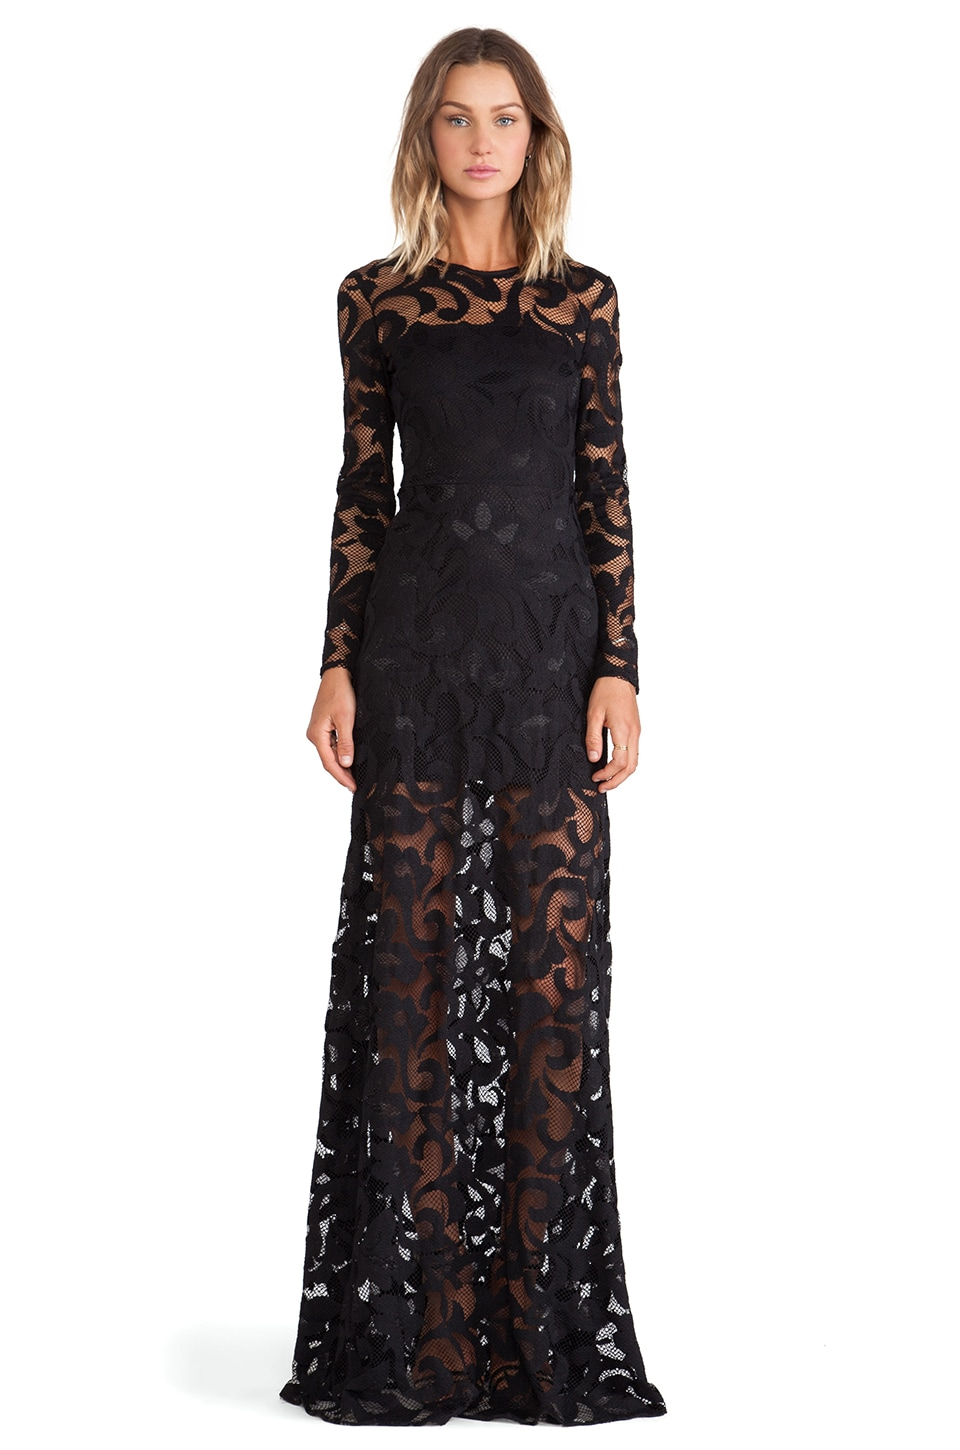 Alexis Maribor Lace Dress in Black